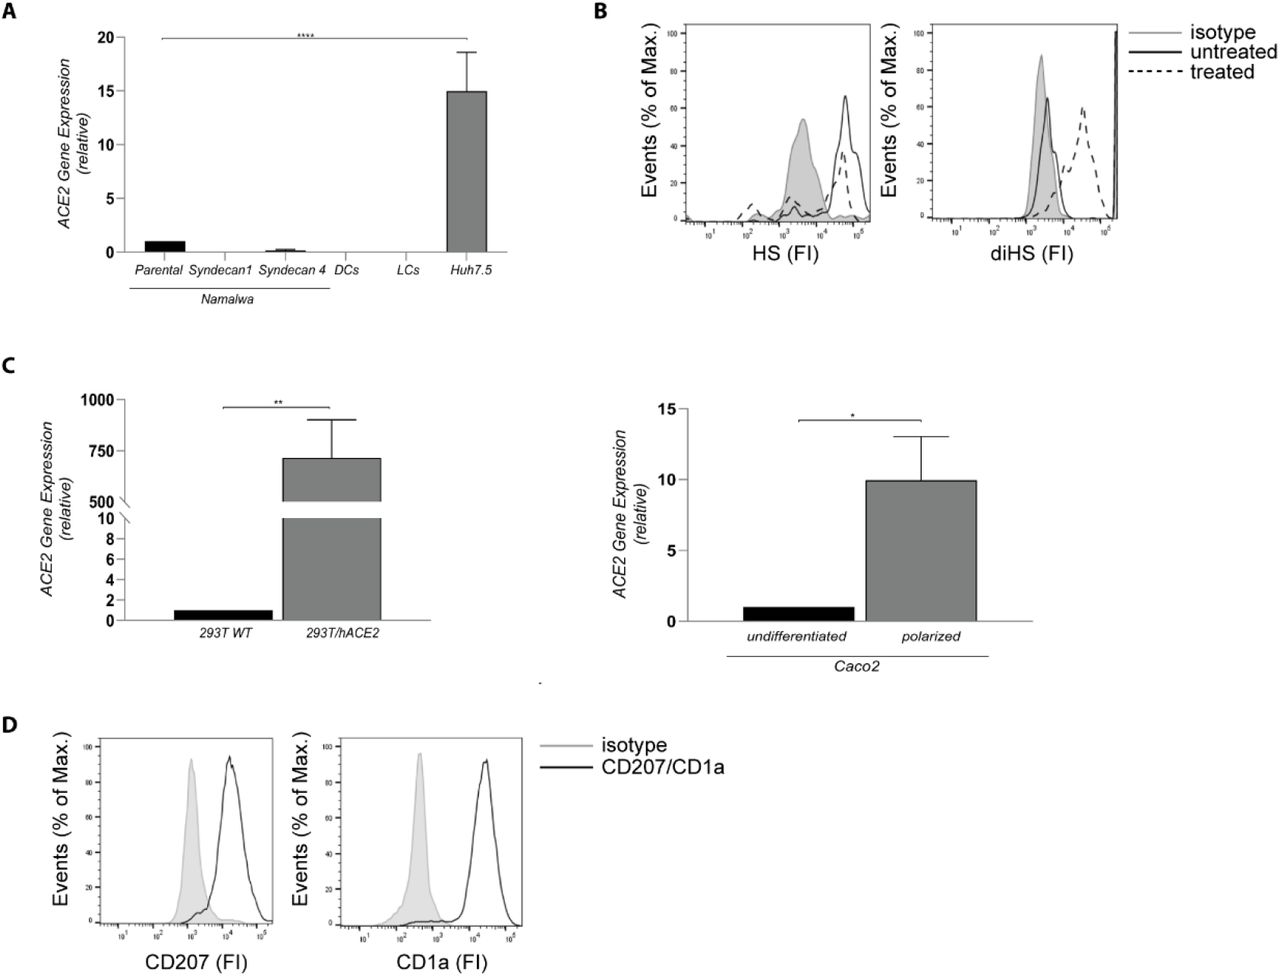 ( A ) ACE2 cell surface expression on Namatwa cell line, DCs, LCs and Huh 7.5. Representative data for an experiment repeated more than three times with similar results. ( B ) Huh7.5 were left untreated or treated with heparinase for 1 hand heparan sulfate or digested heparan sulfate expression was determined by flow cytometry. One representative donor out of 3 is depicted. ( C ) Cell surface expression of ACE2 on 293T and Caco2 cell lines was determined by real-time PCR. ( D ) LC were stained with antibodies against CD207 and CD1 a and analysed by flow cytometry. The histogram shows the cell surface expression of the receptor. Representative data for an experiment repeated more than three times with similar results. Data show the mean values and error bars are the SEM. Statistical analysis was performed using ( A ) ordinary one-way ANOVA with Tukey's multiple-comparison test. ****p